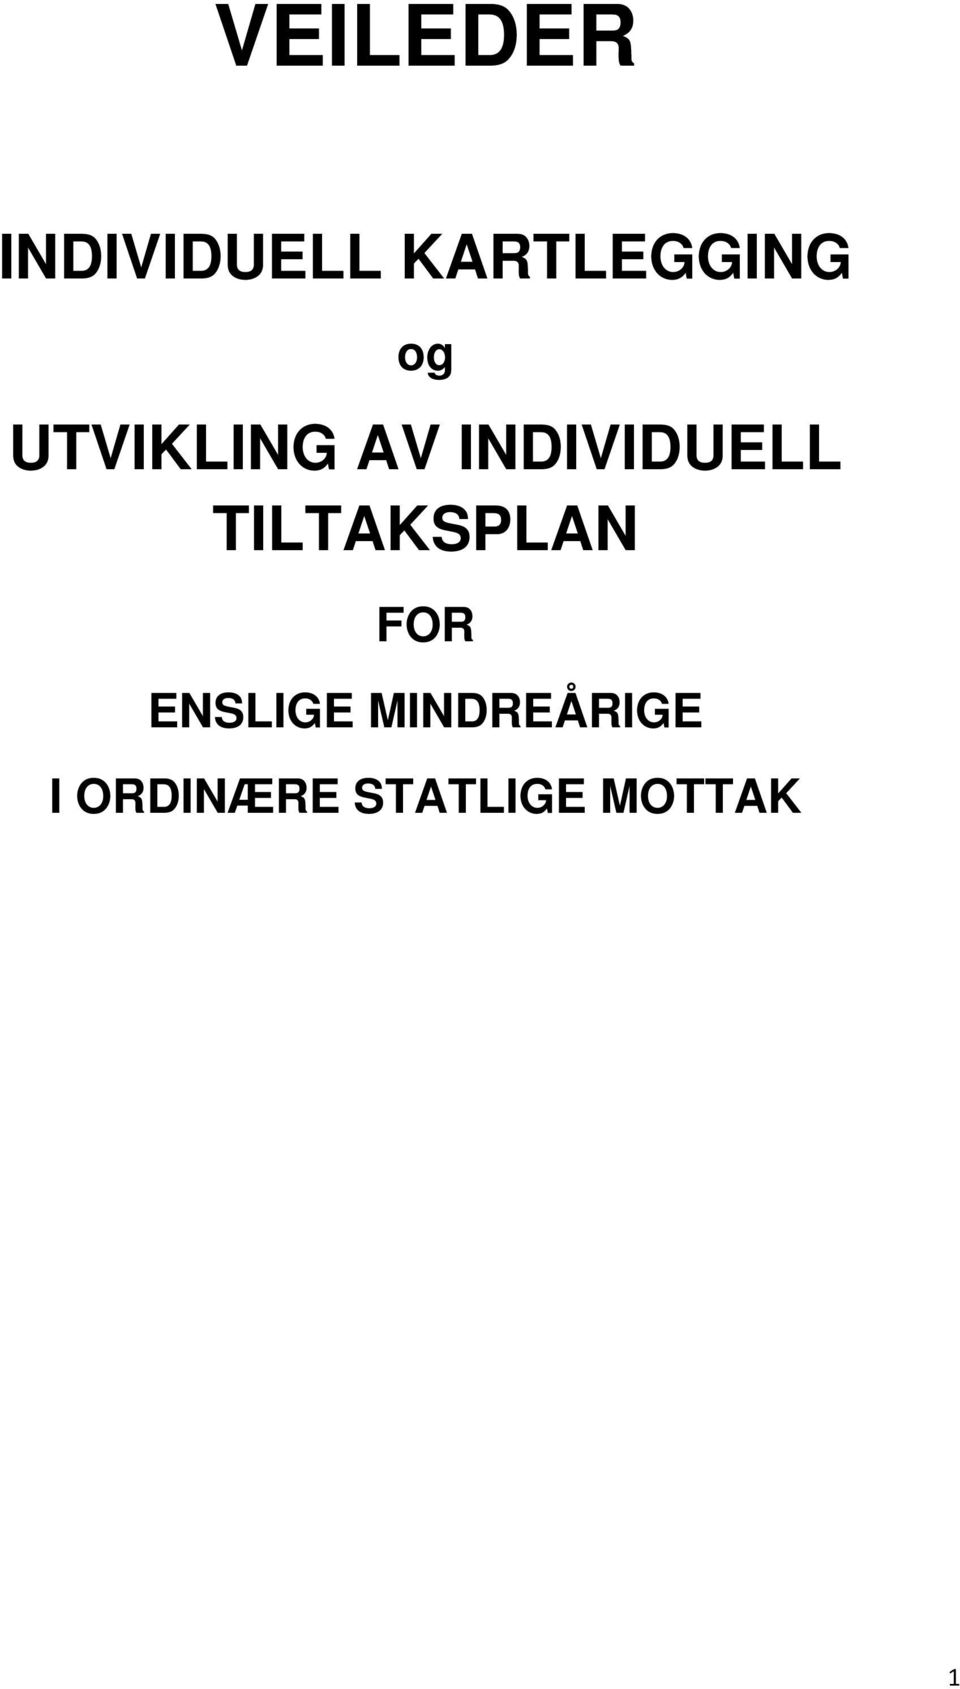 INDIVIDUELL TILTAKSPLAN FOR